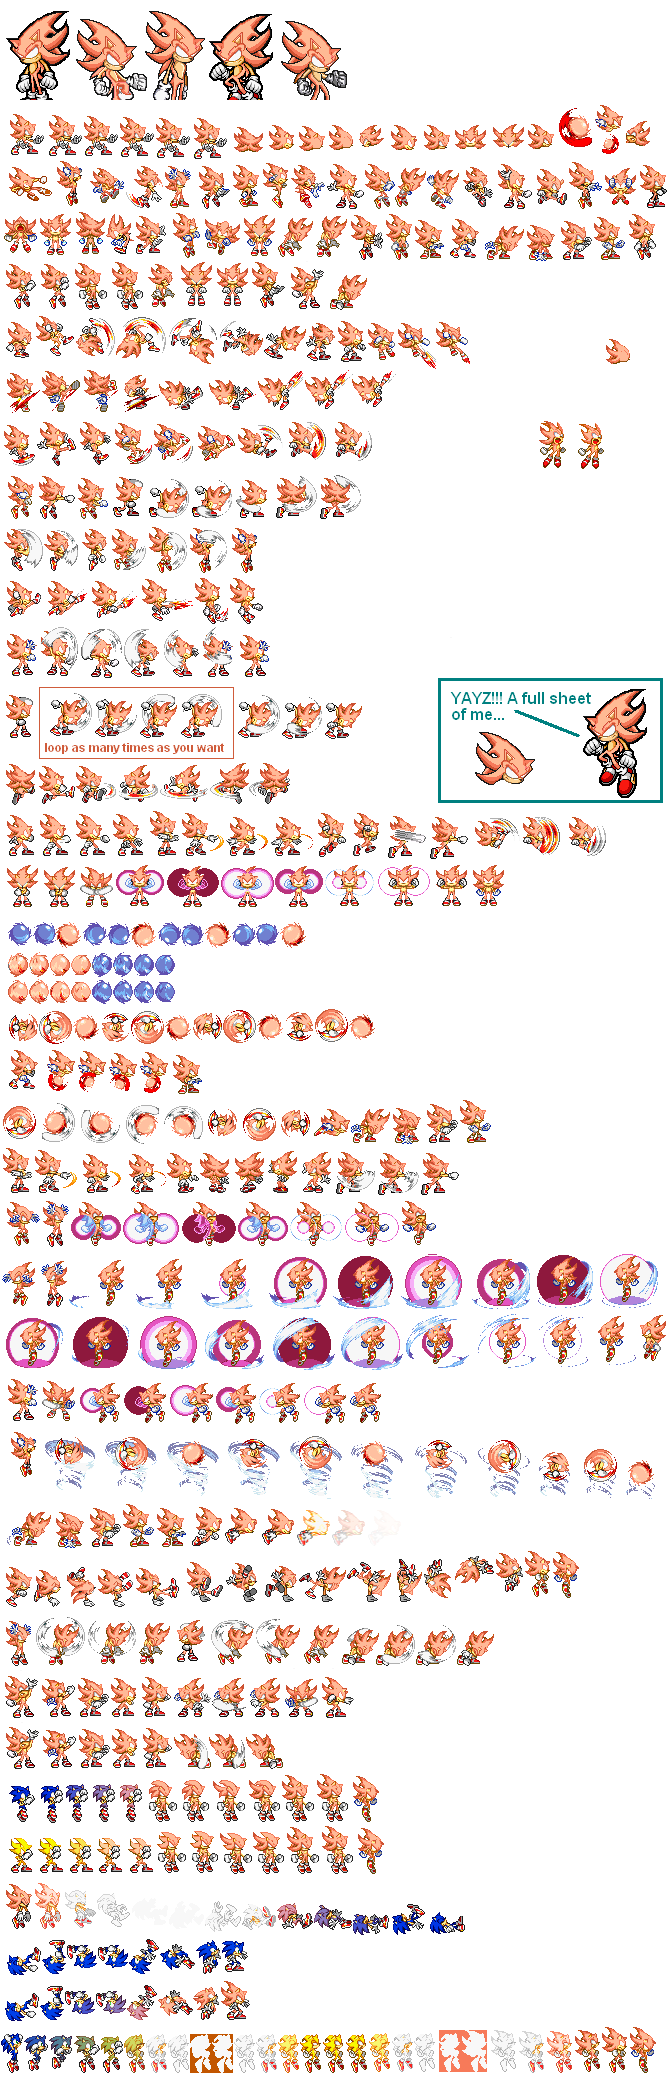 Hyper Shadow Sprites Pictures to Pin on Pinterest - PinsDaddy